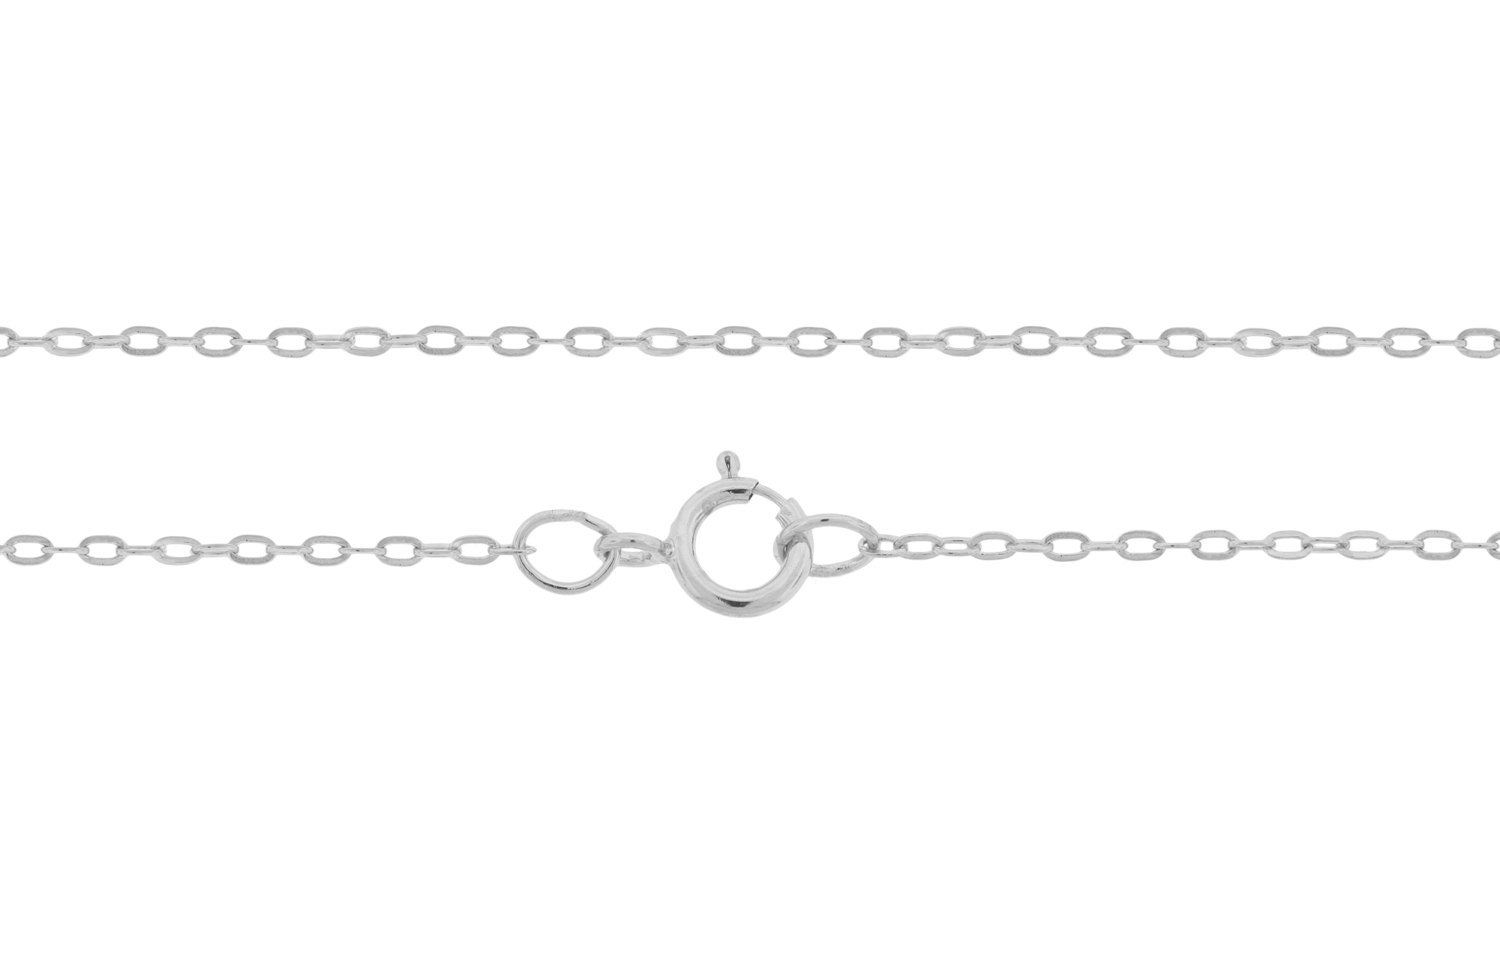 "Primary image for Chain, Drawn  Cable Chain W/ Clasp, Sterling Silver, 1.5x1mm 22"", 1pc (6787)/1"